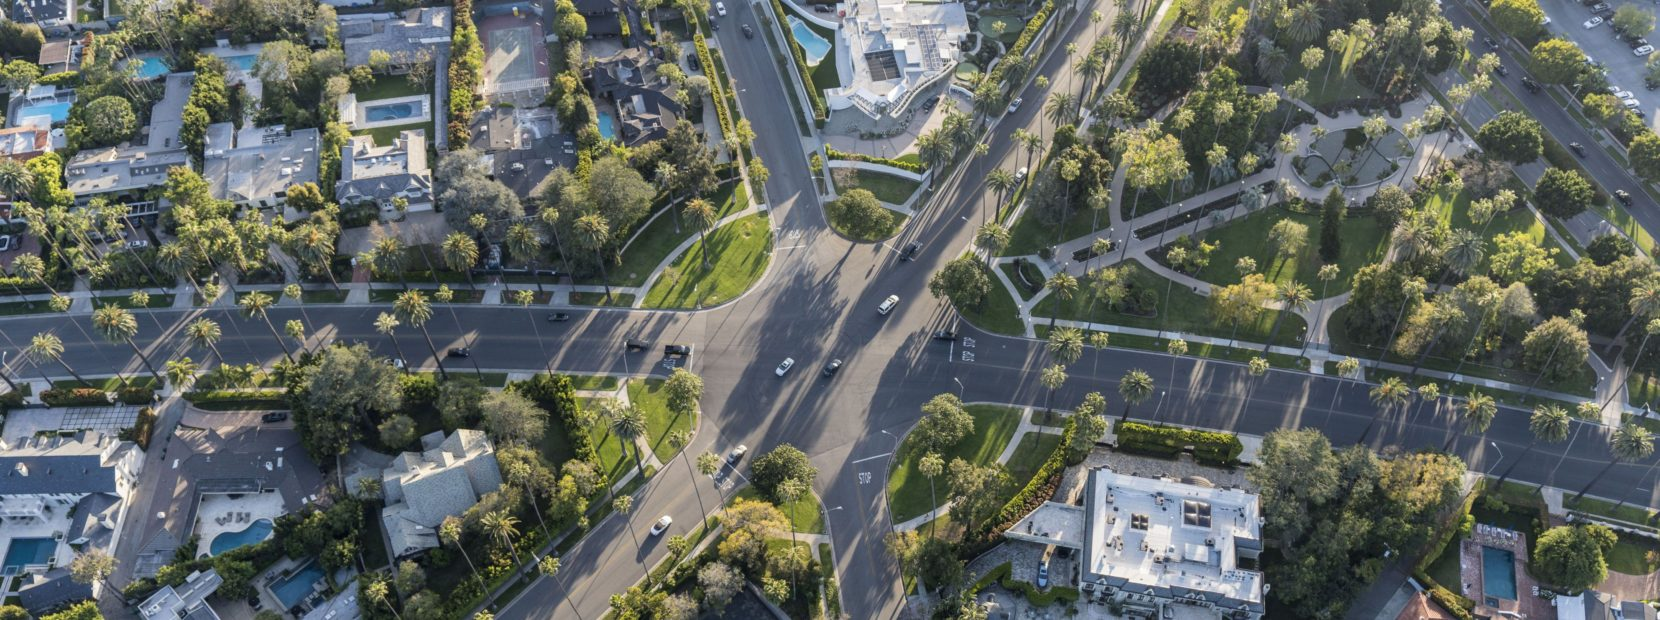 KLM Projekt will design highway intersections for Estonian Road Administration